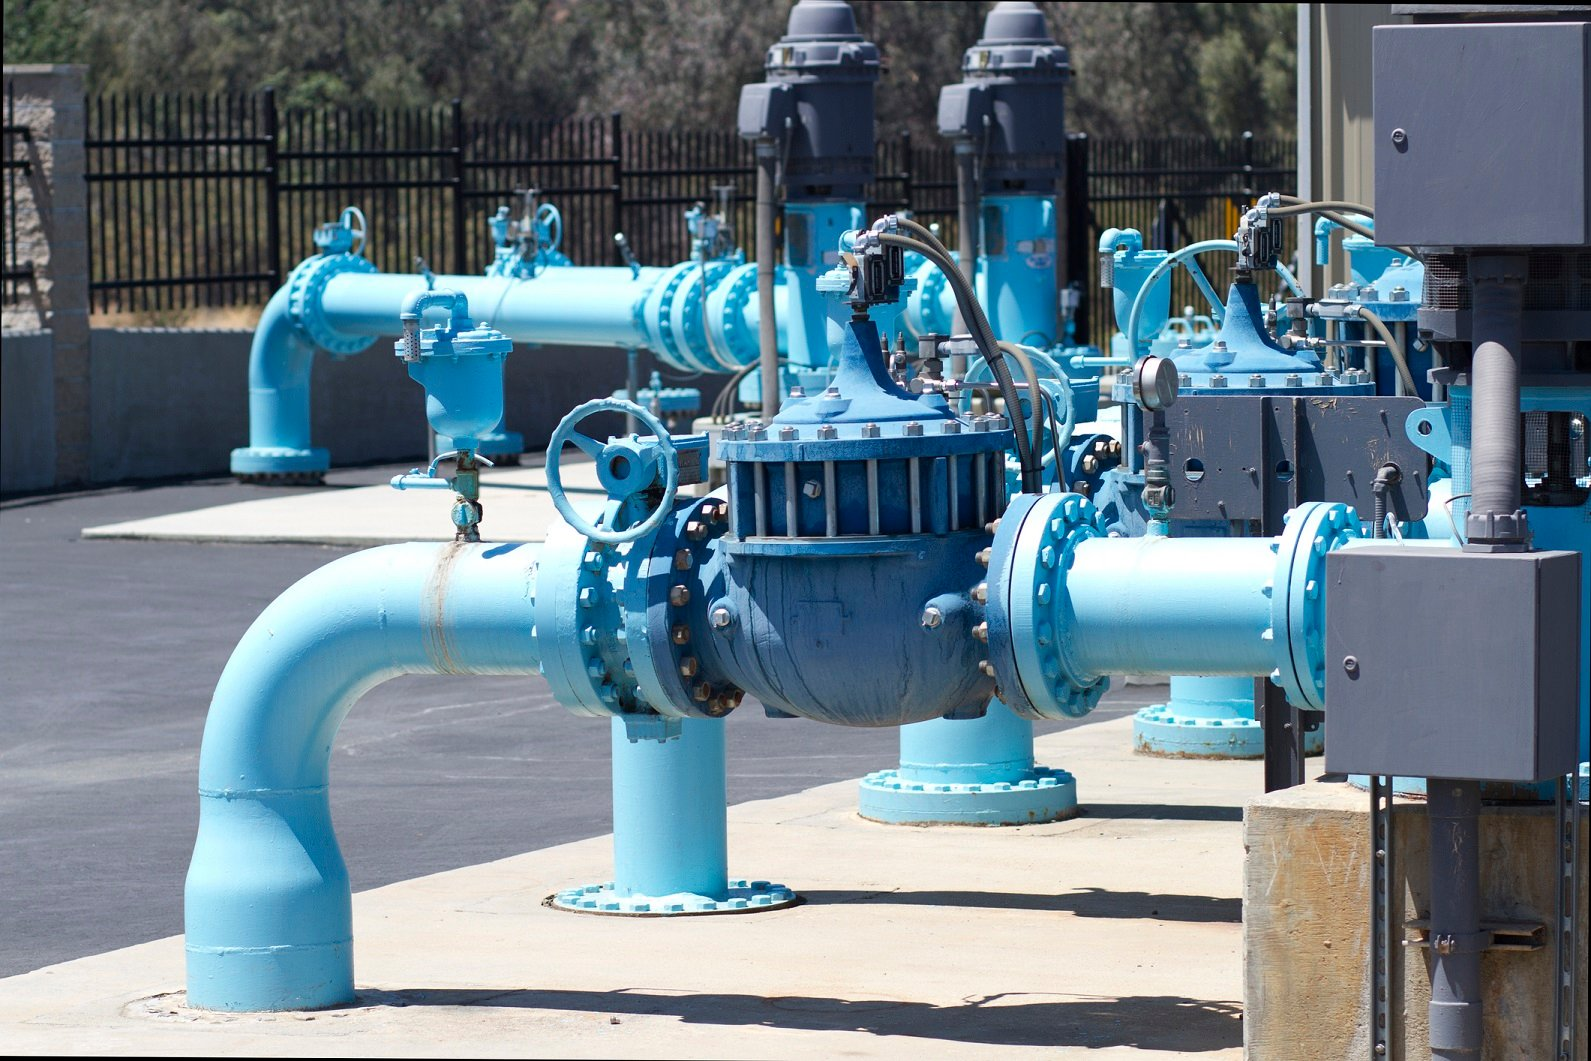 Stand-in pump hire replacement keeps MOD pumping station online